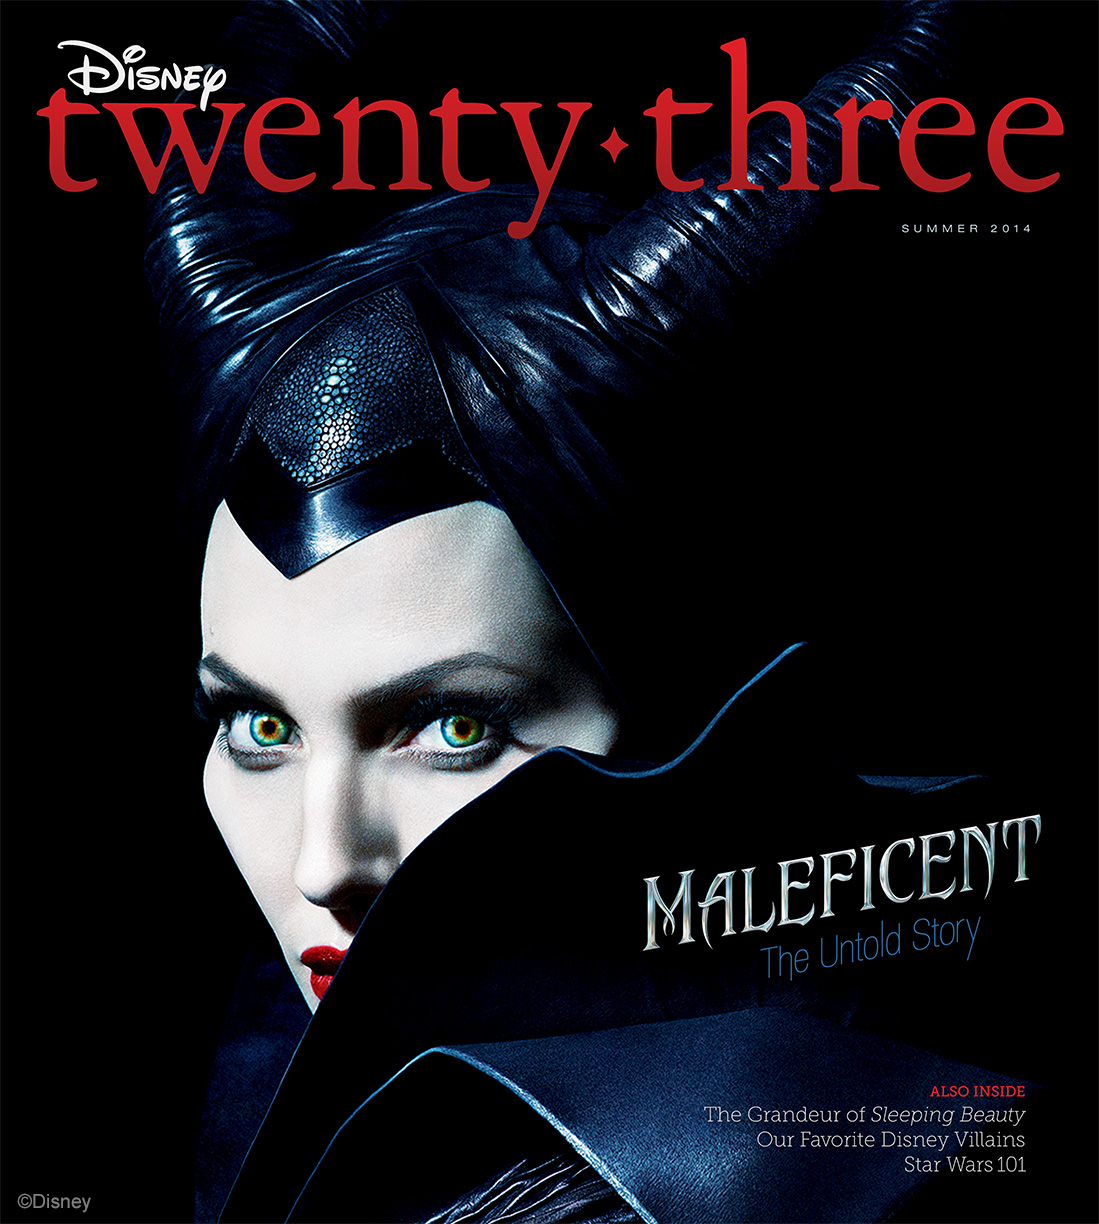 disneytwenty-three_6.2-summer-2014_cover-lg-copyright